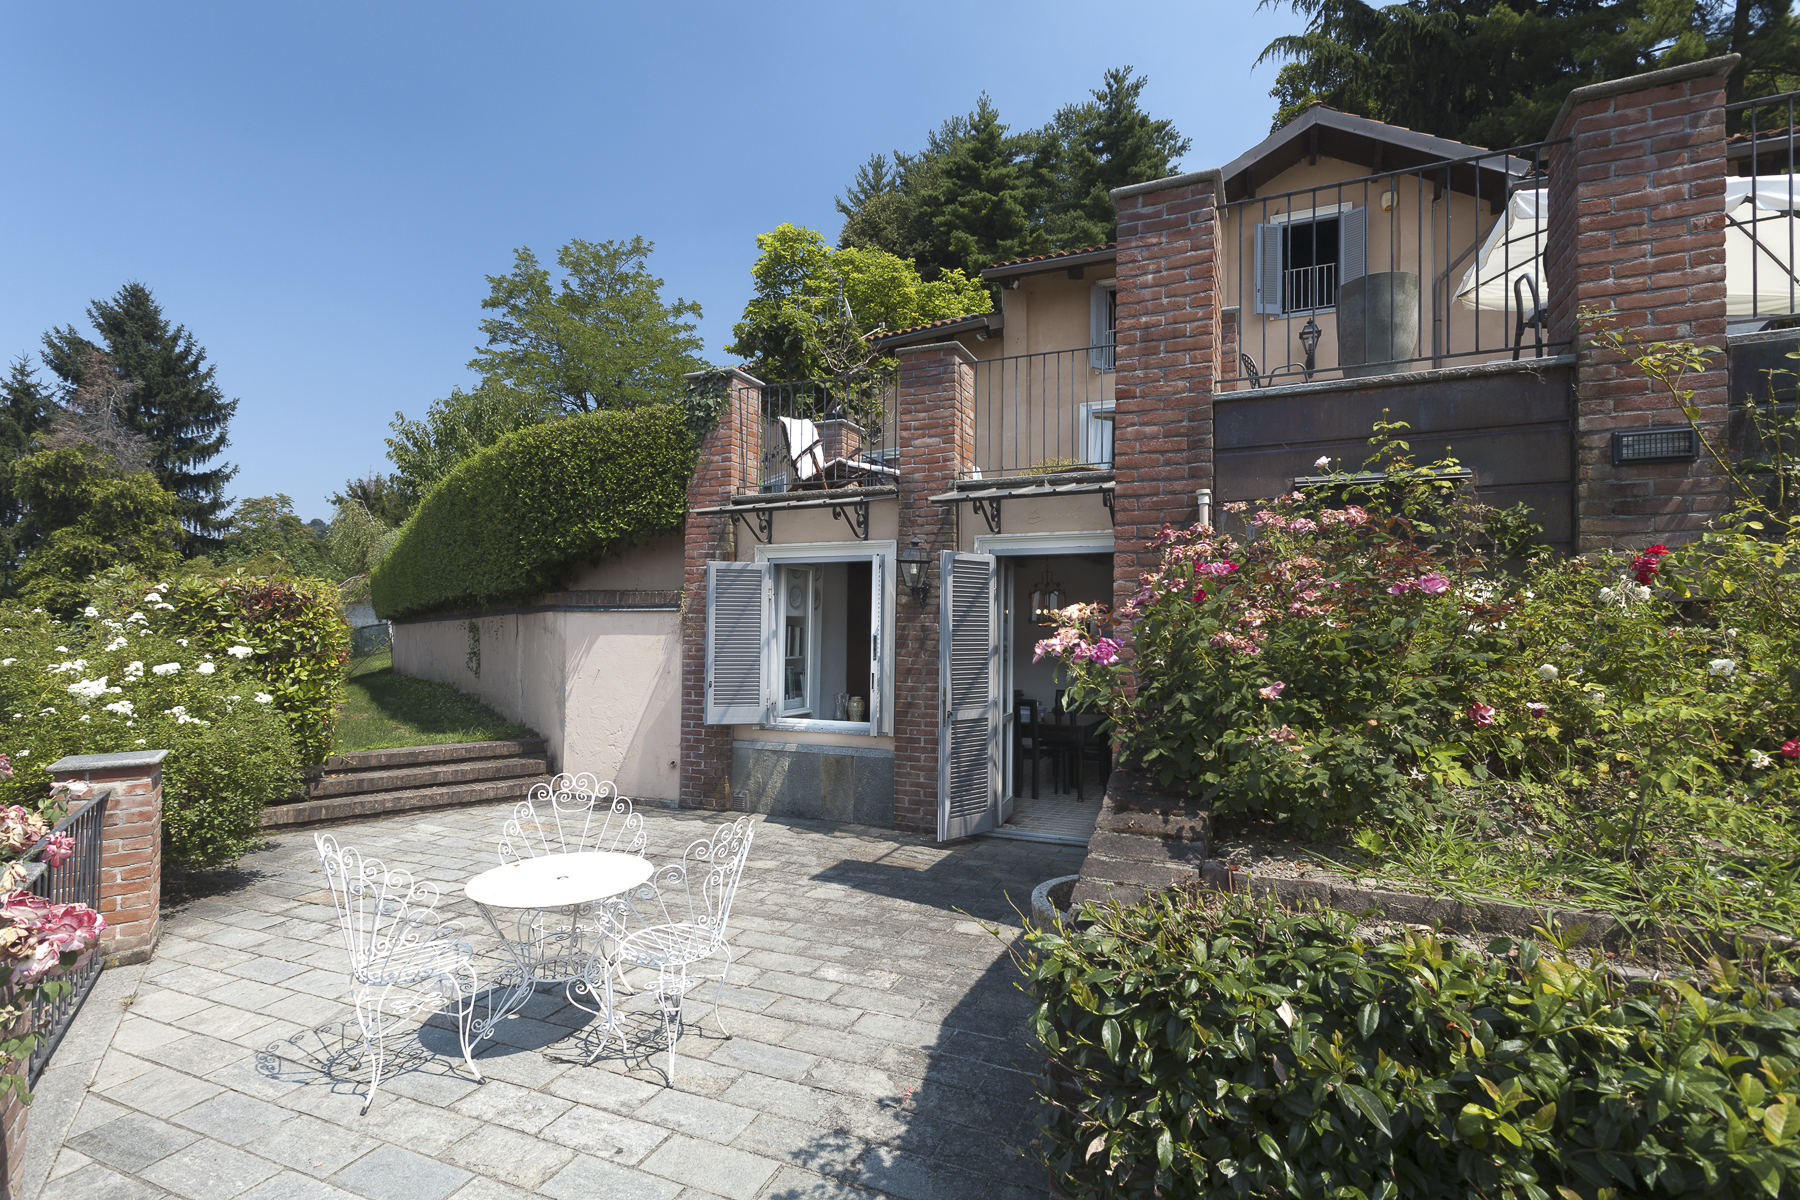 Additional photo for property listing at Detached home with private garden close to Corso Casale Via Monteu da Po Torino, Turin 10132 Italie